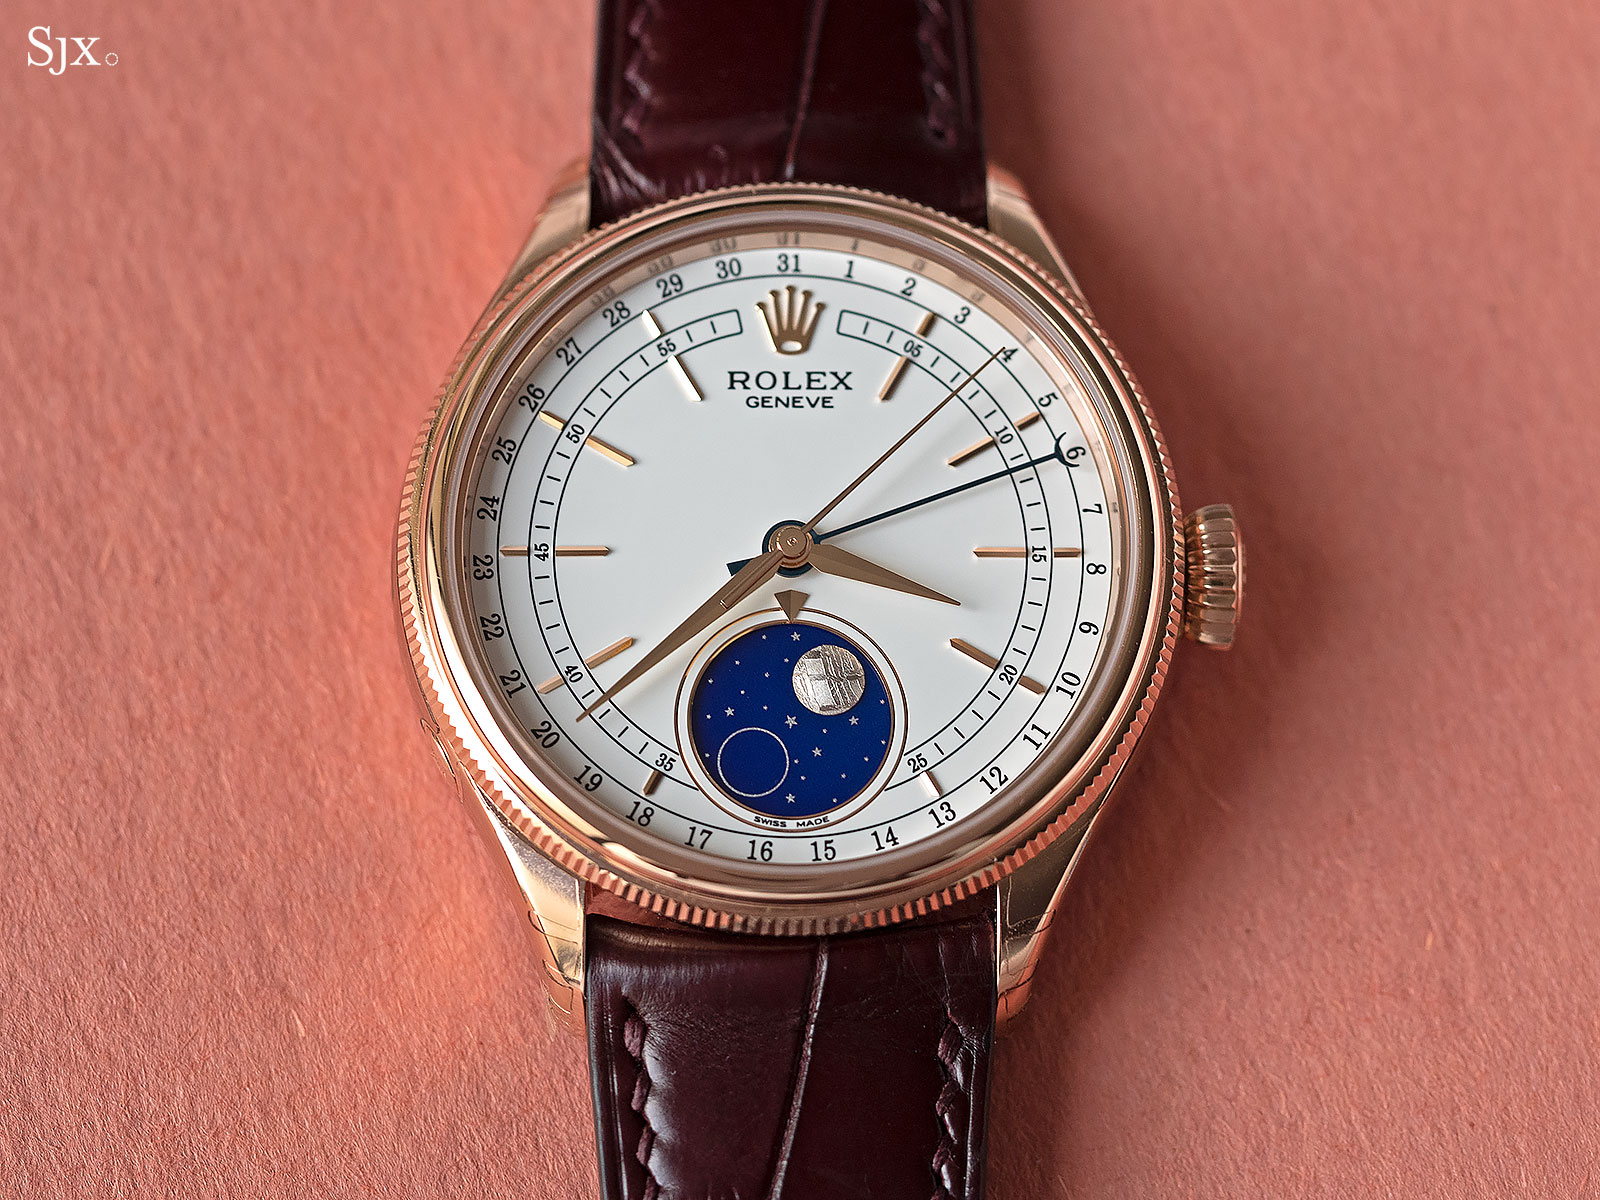 Rolex Cellini Moonphase 50535 review 10